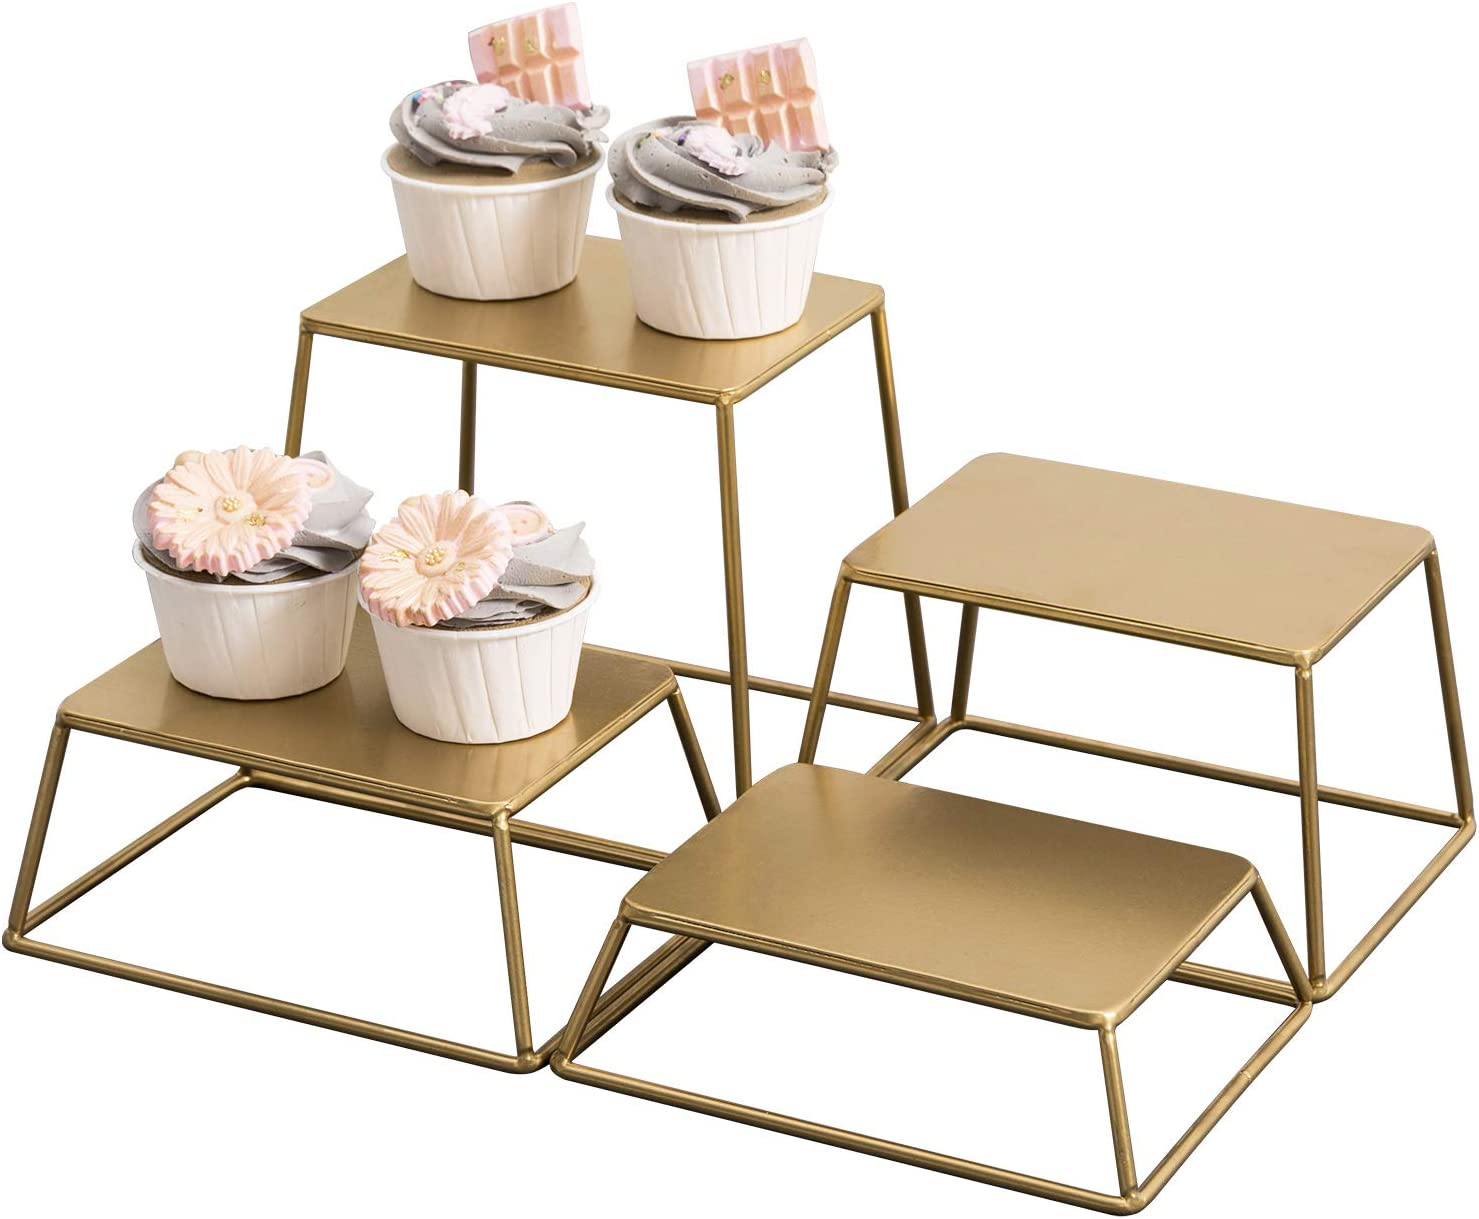 MyGift Modern Brass Tone Metal Nesting Buffet Table Food or Retail Display Risers, Set of 4